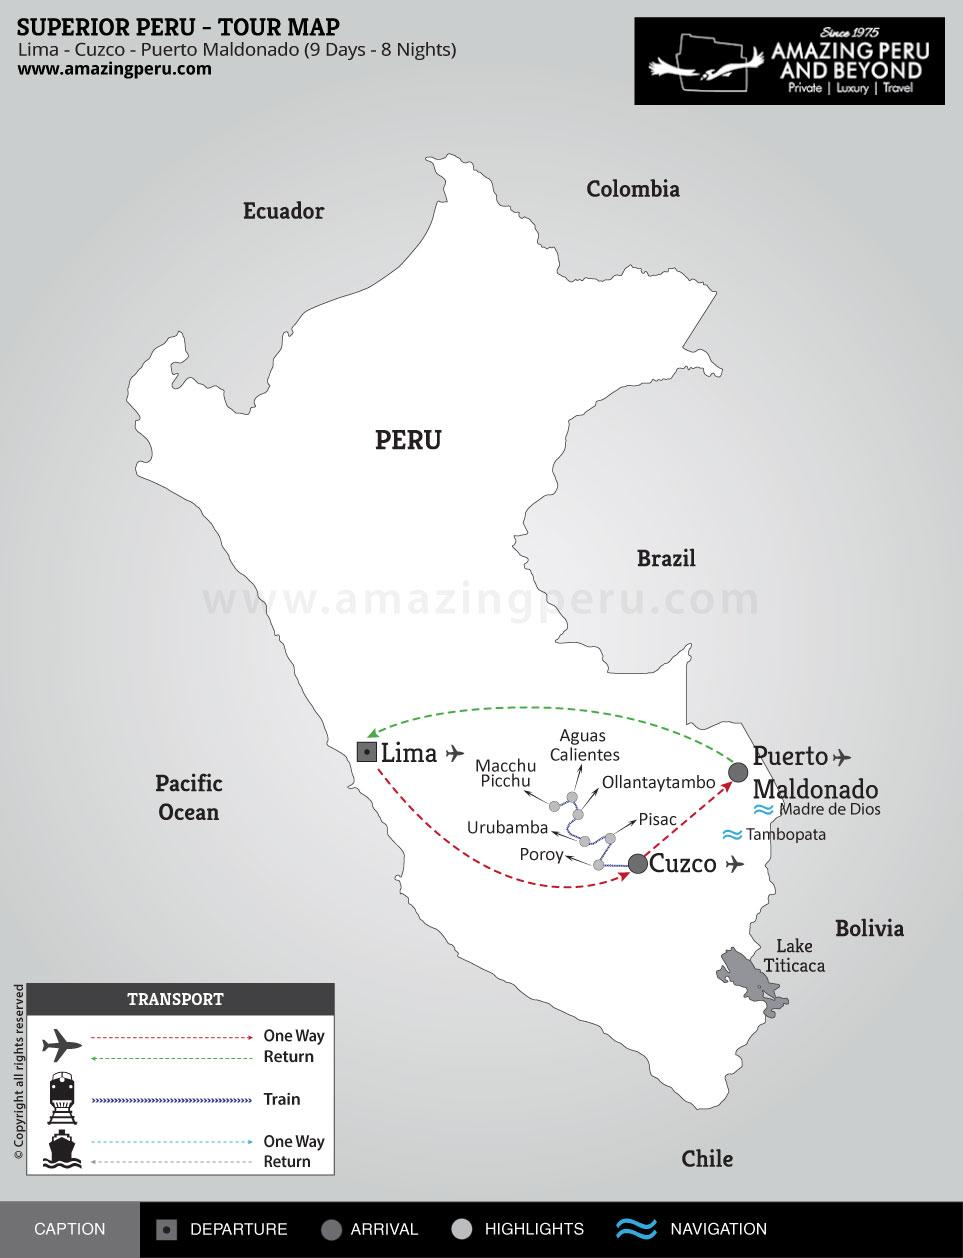 Superior Peru Tour 1 - 9 days / 8 nights.